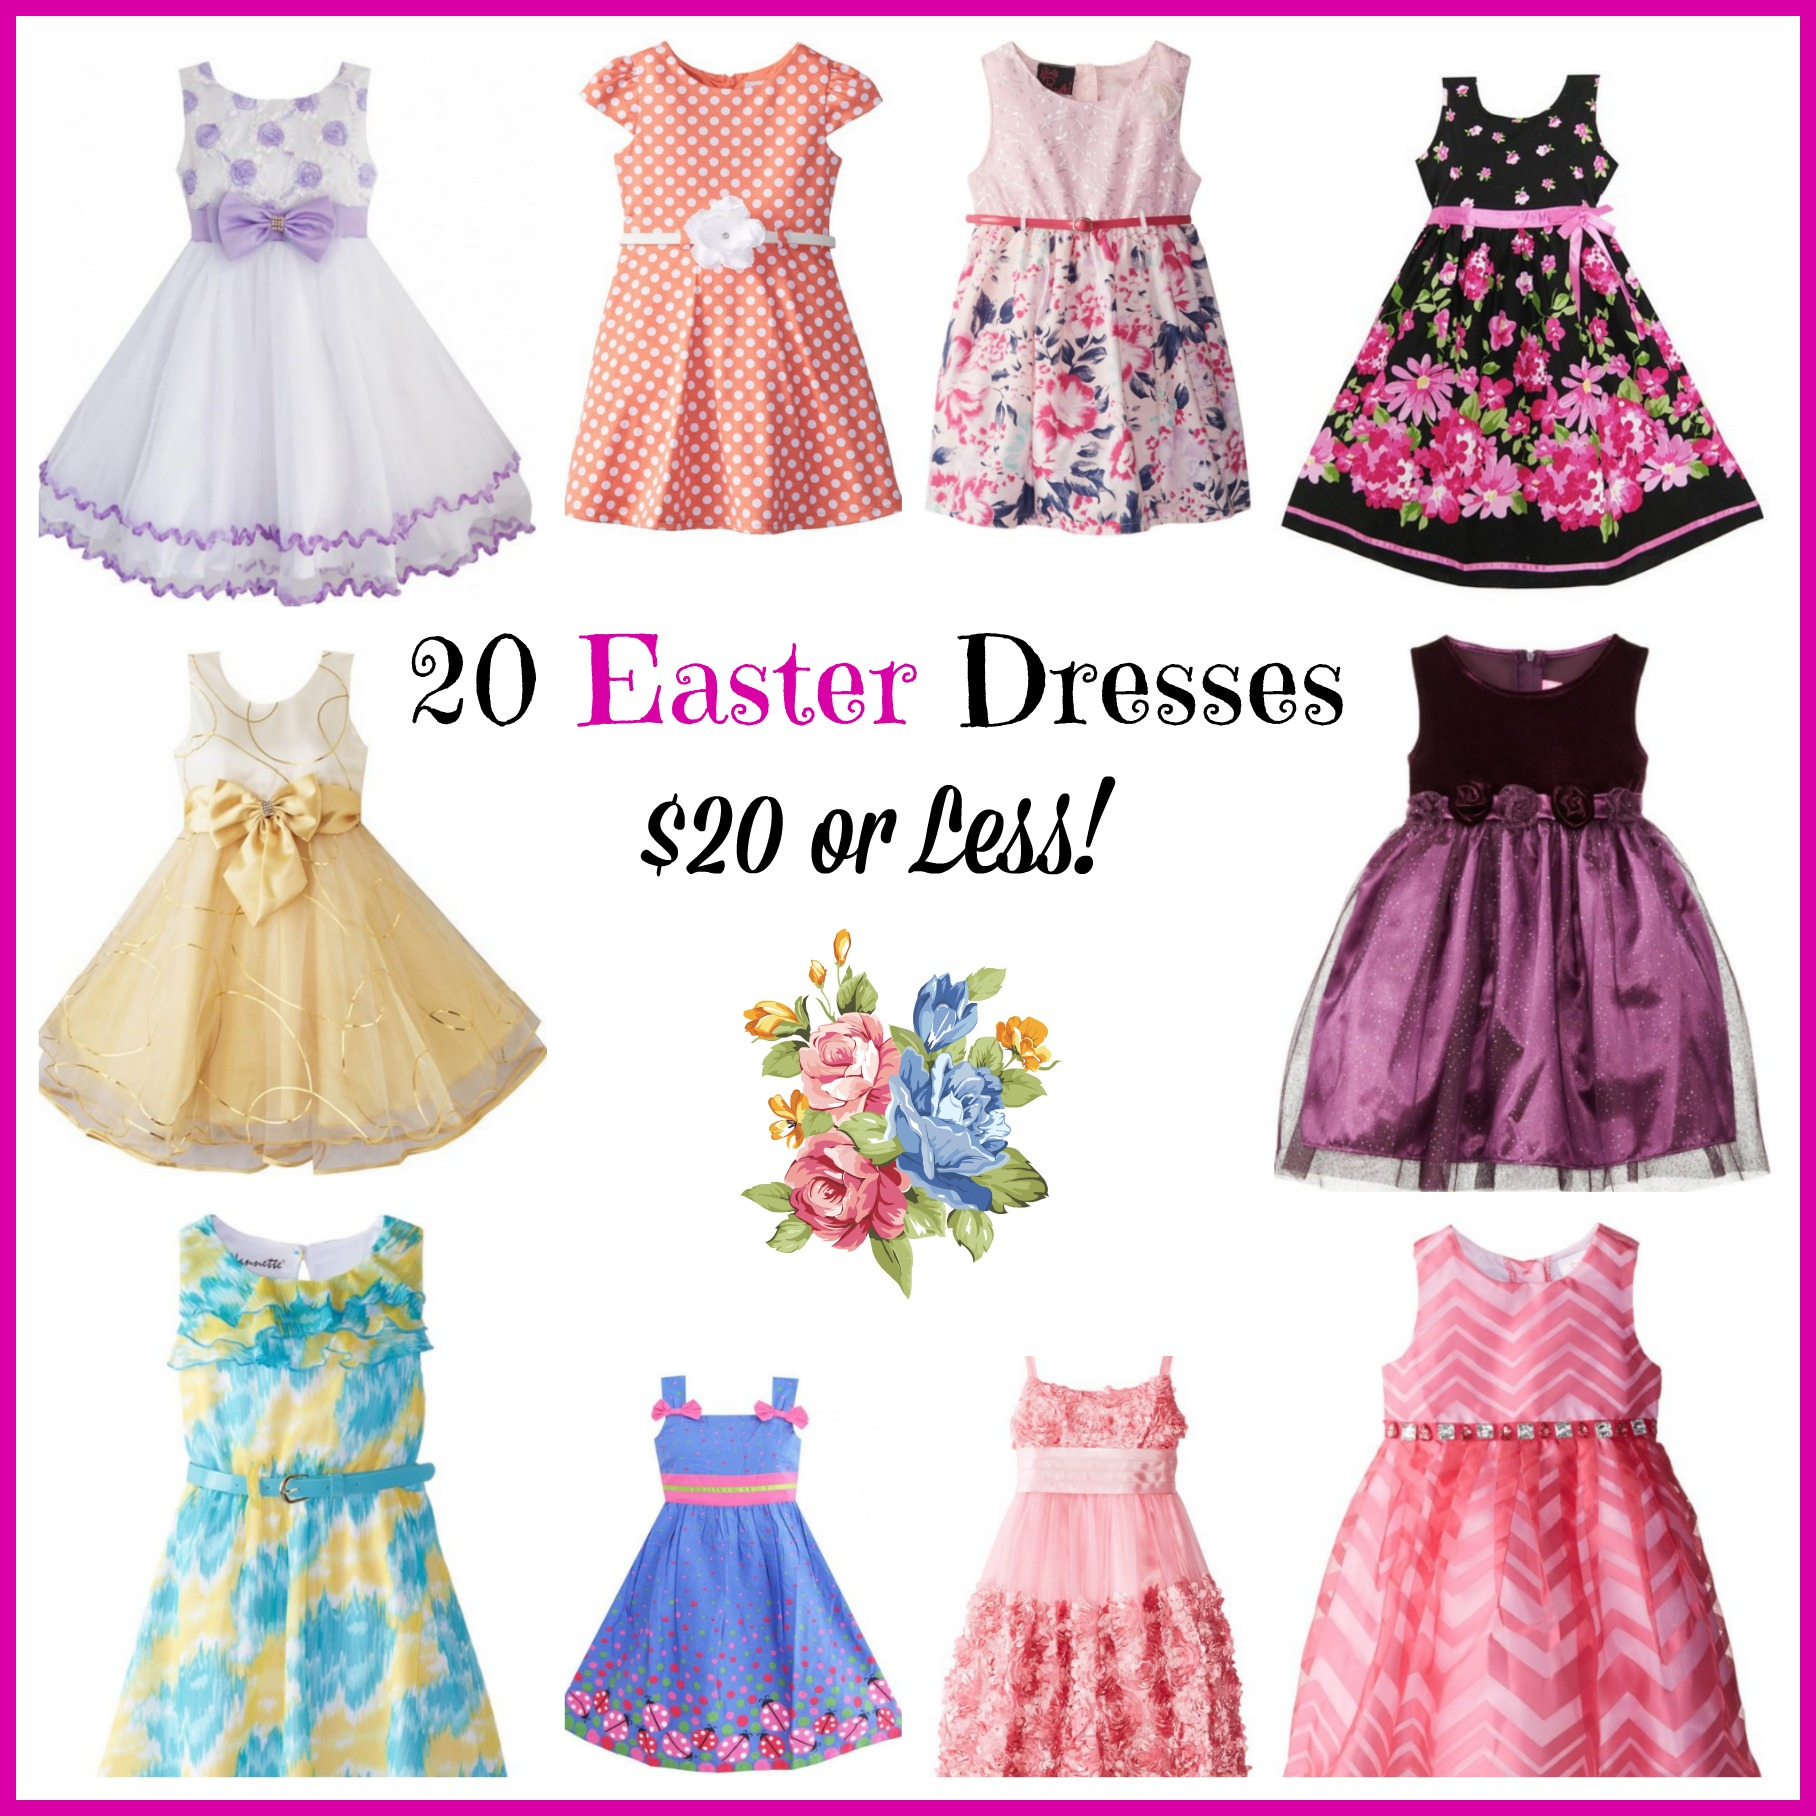 20 Cute Girls Easter Dresses Under $20